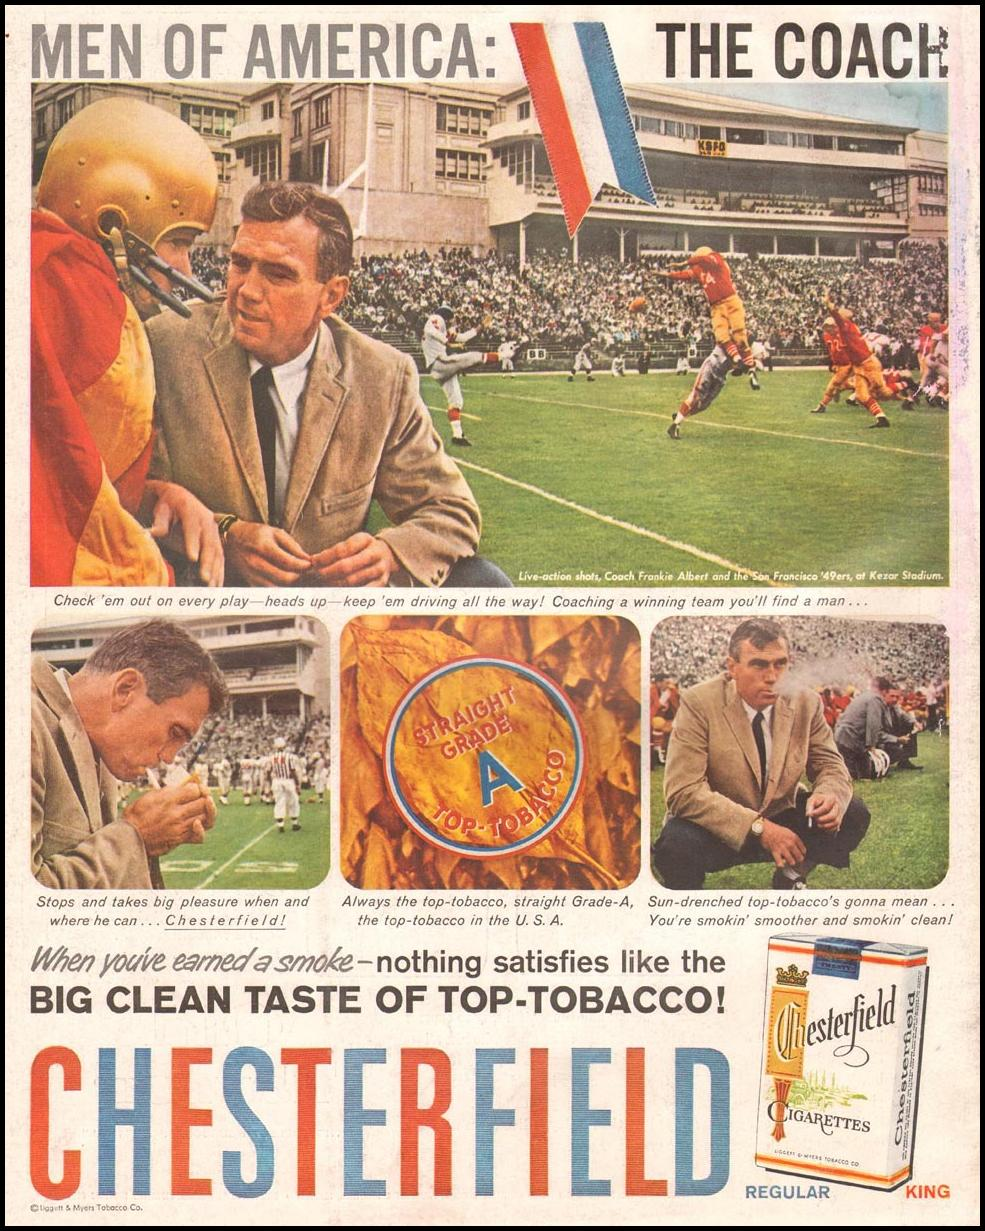 CHESTERFIELD CIGARETTES LIFE 11/24/1957 BACK COVER